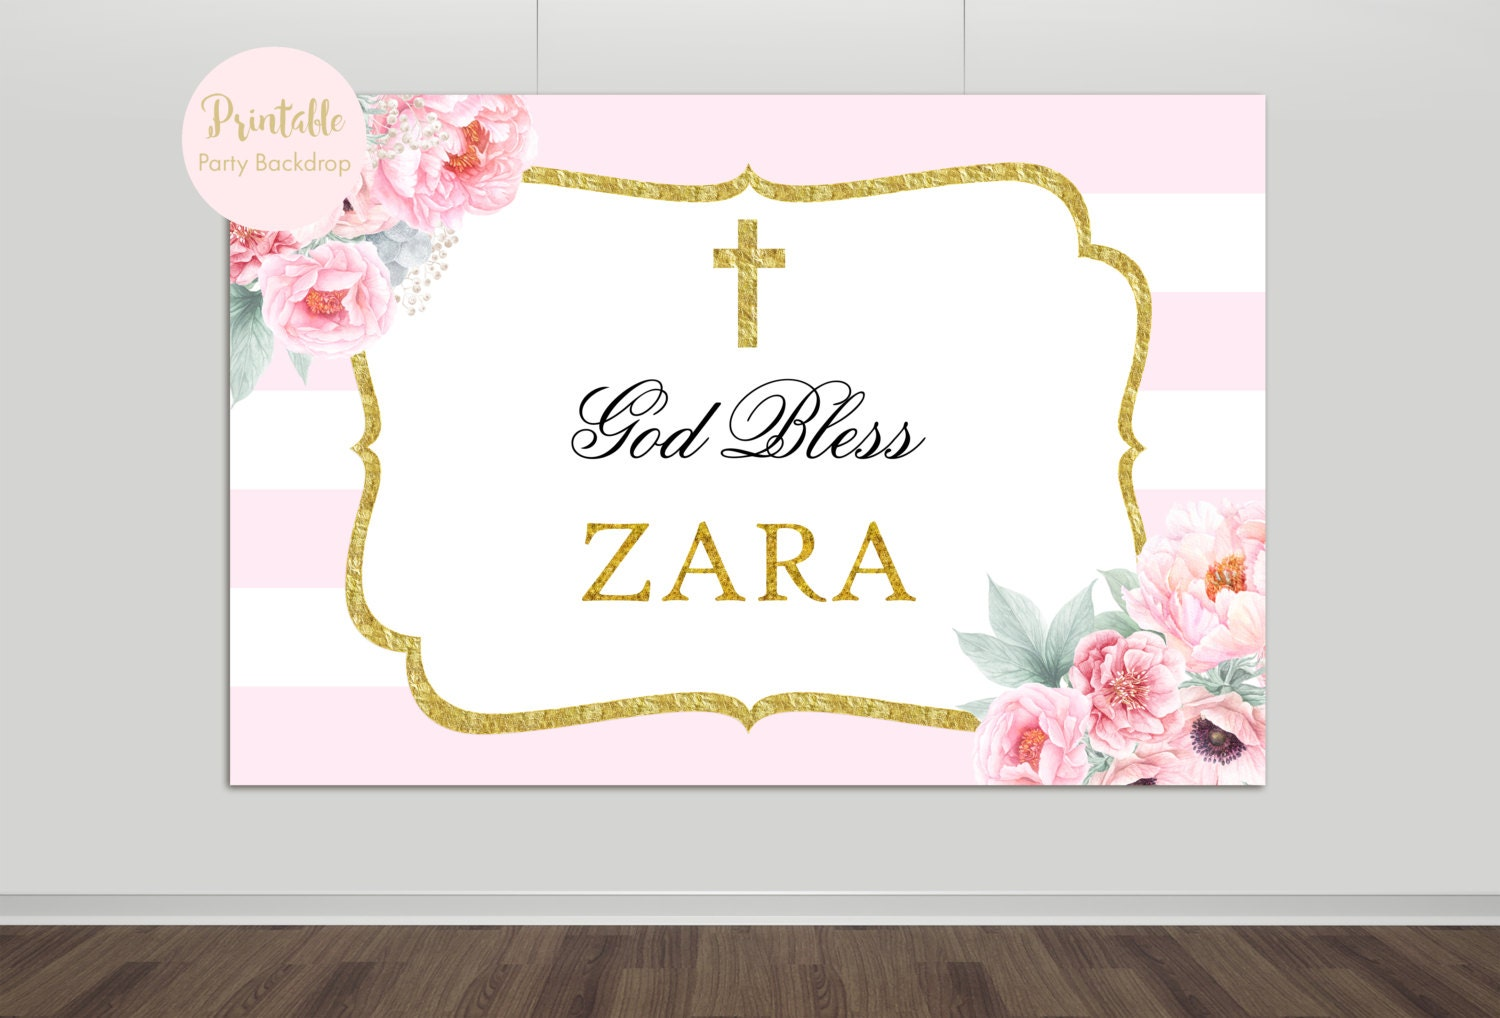 image relating to Printable Backdrop named Christening Backdrop Photographs - Opposite Appear